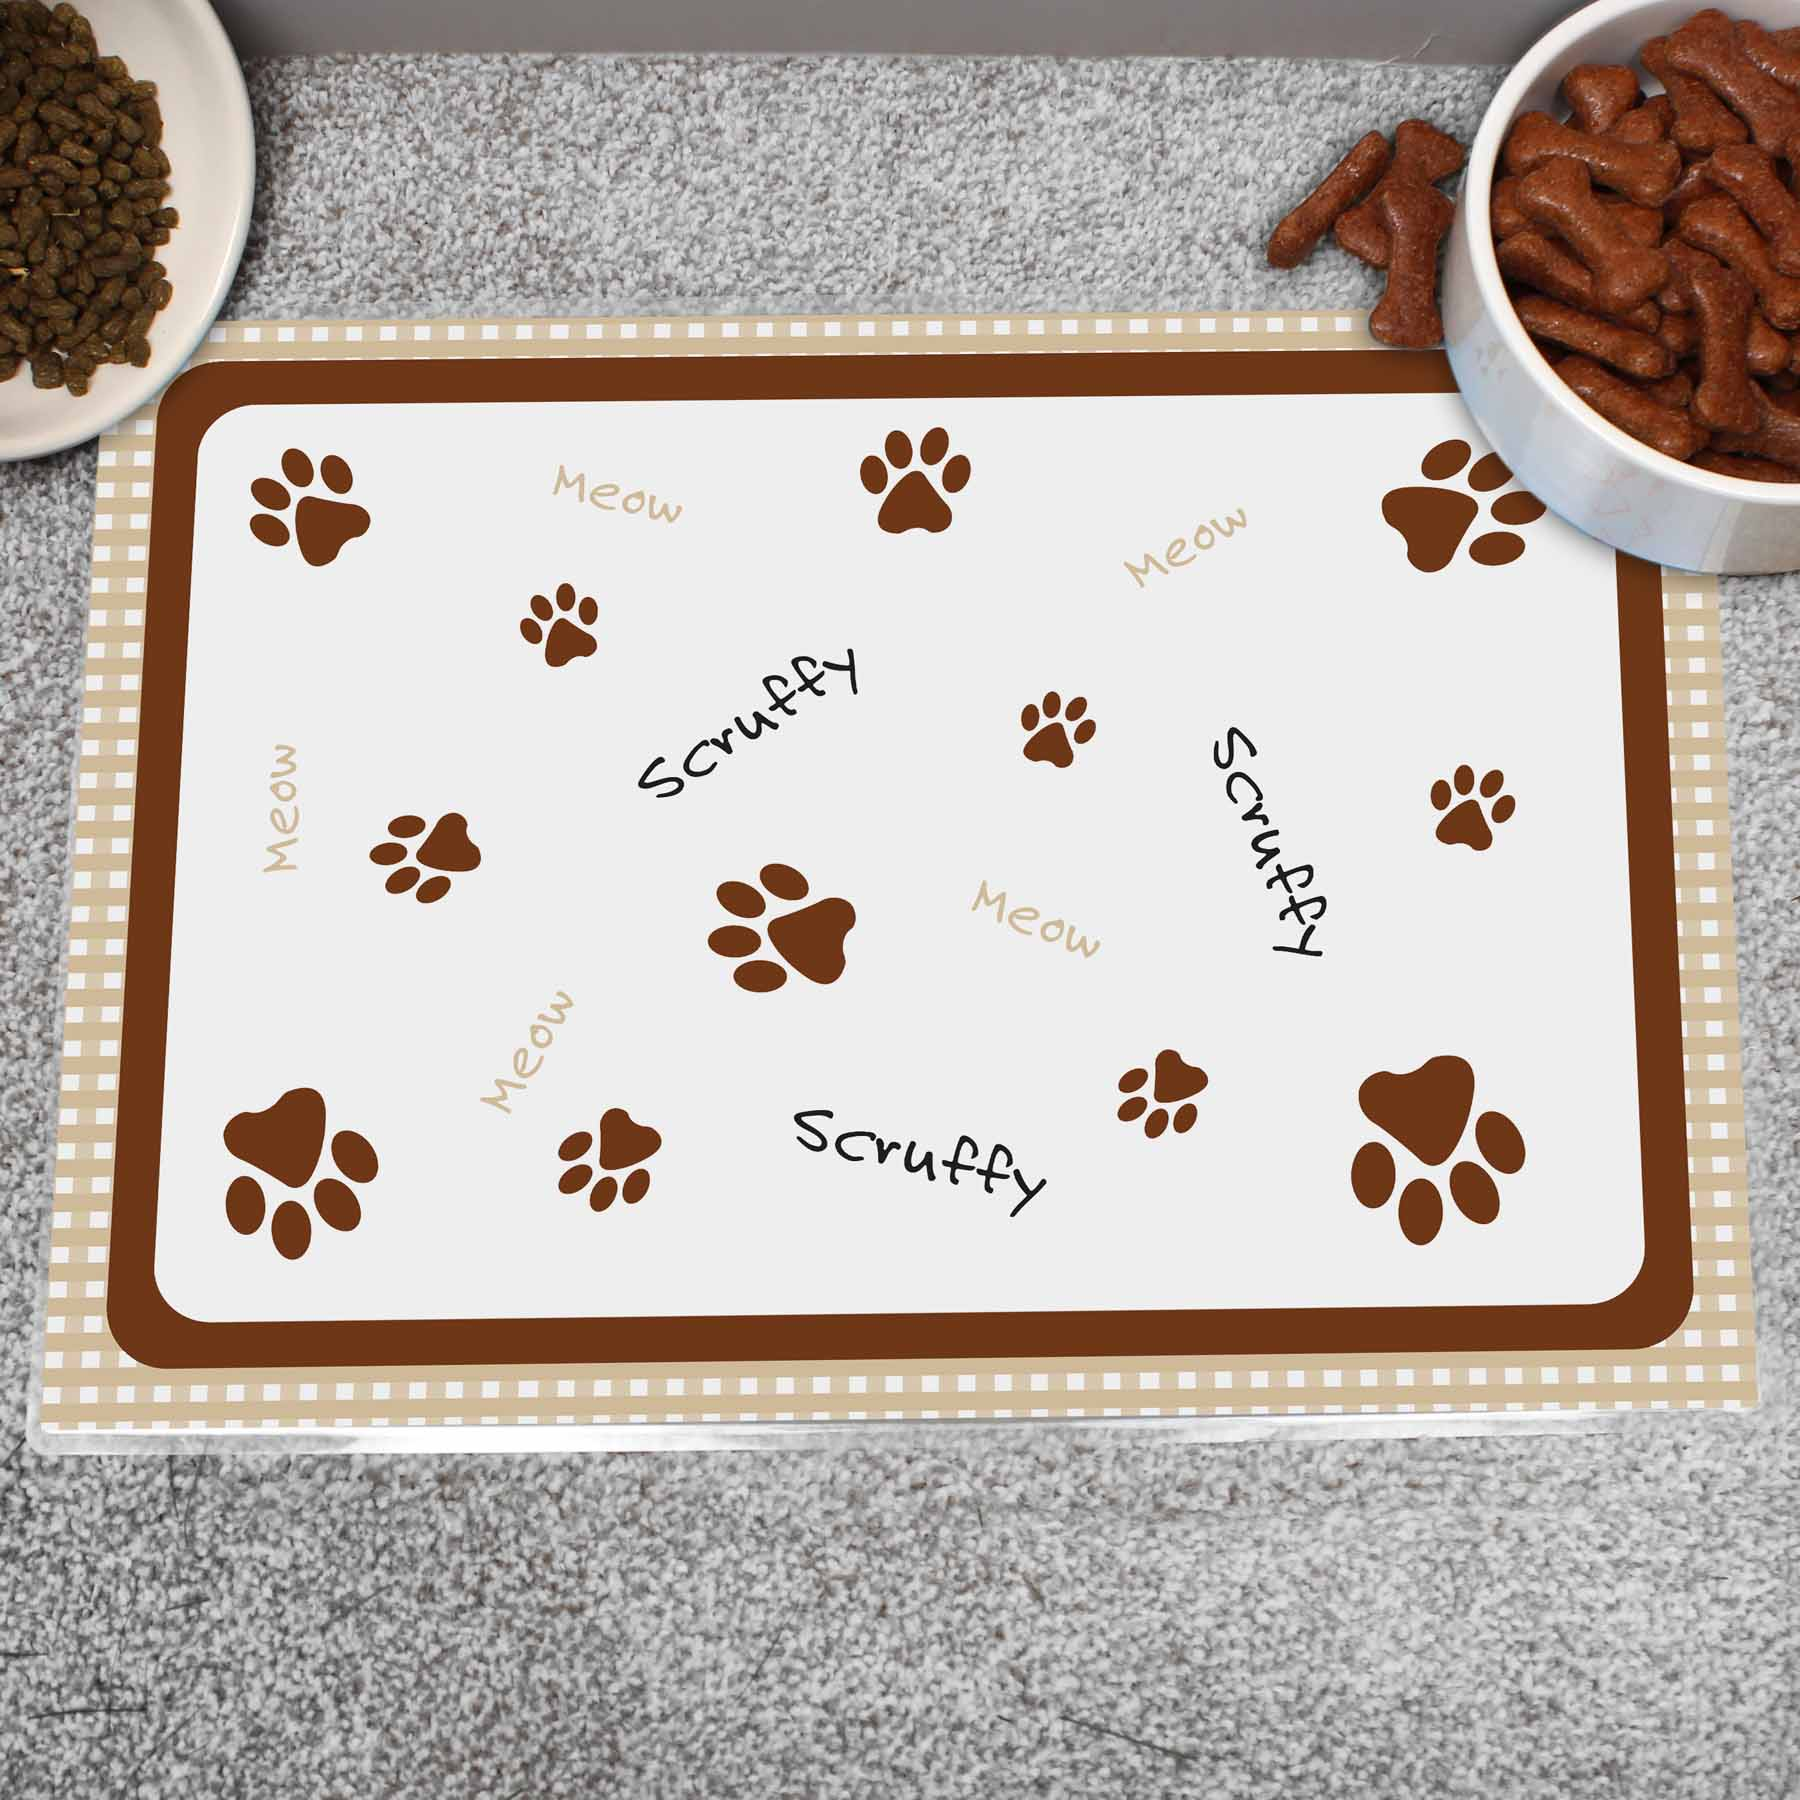 Personalised Cat Placemat, Pet Bowl Mats by Glamorous Gifts